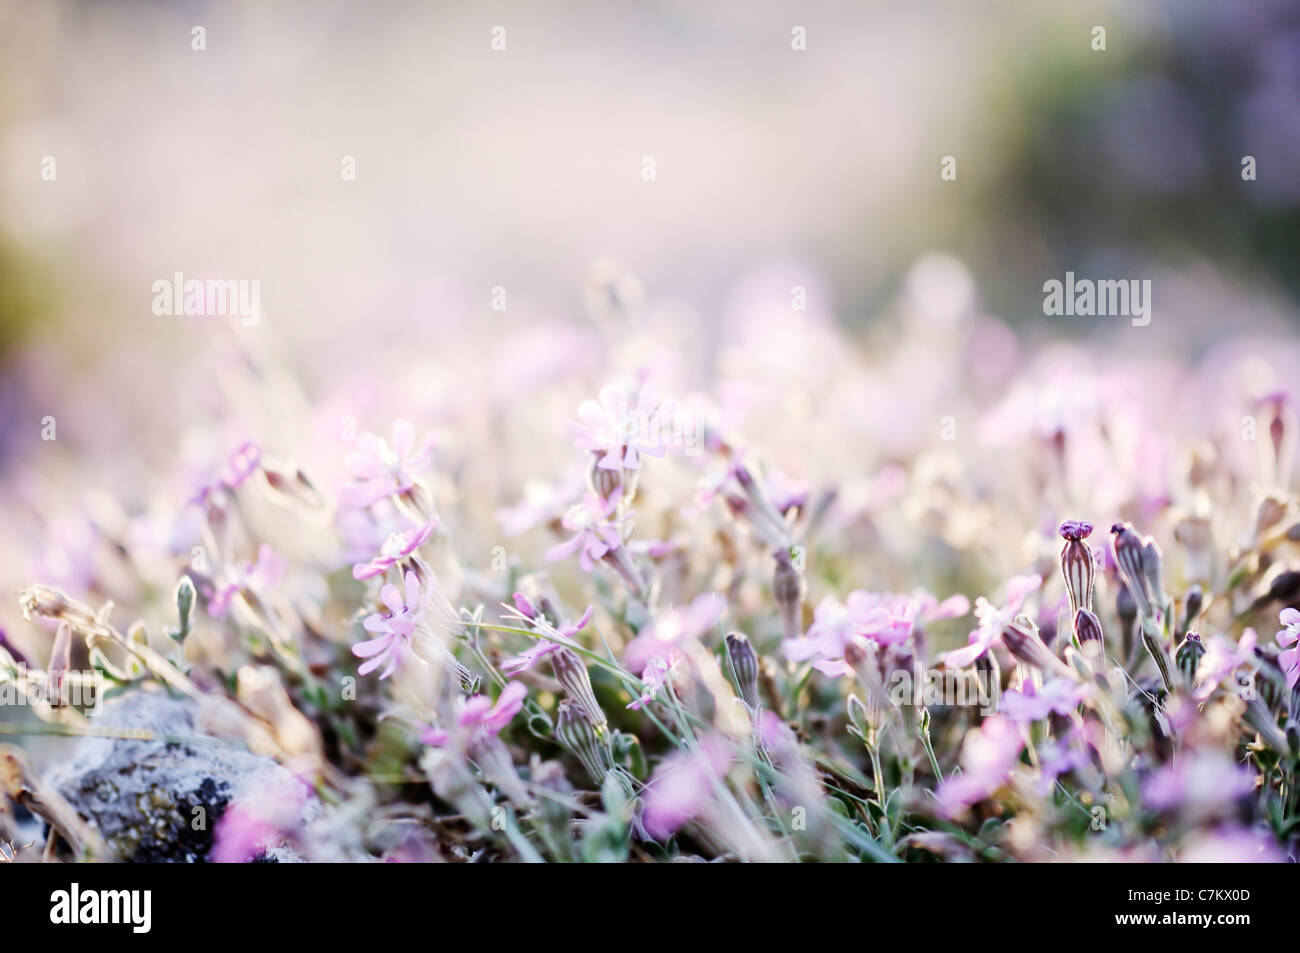 Amazing sunrise over a field of wild flowers - Stock Image